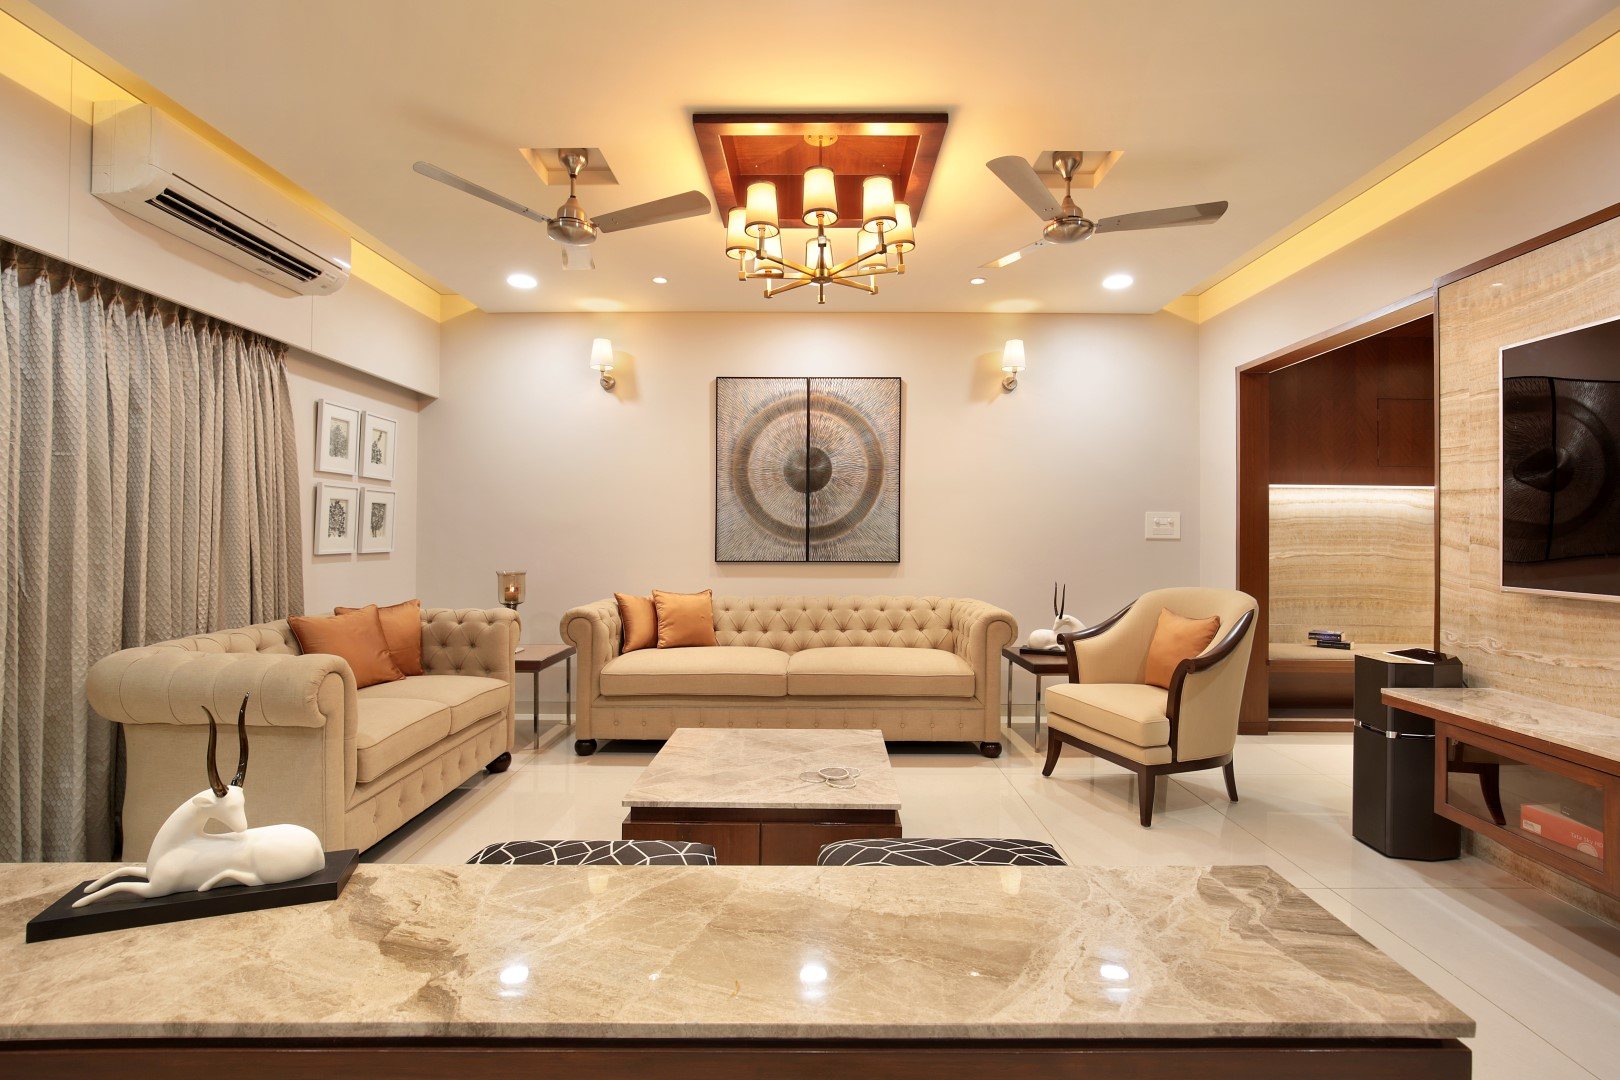 3 bhk flat interiors the oak woods vadodara studio7 for Flat interior images